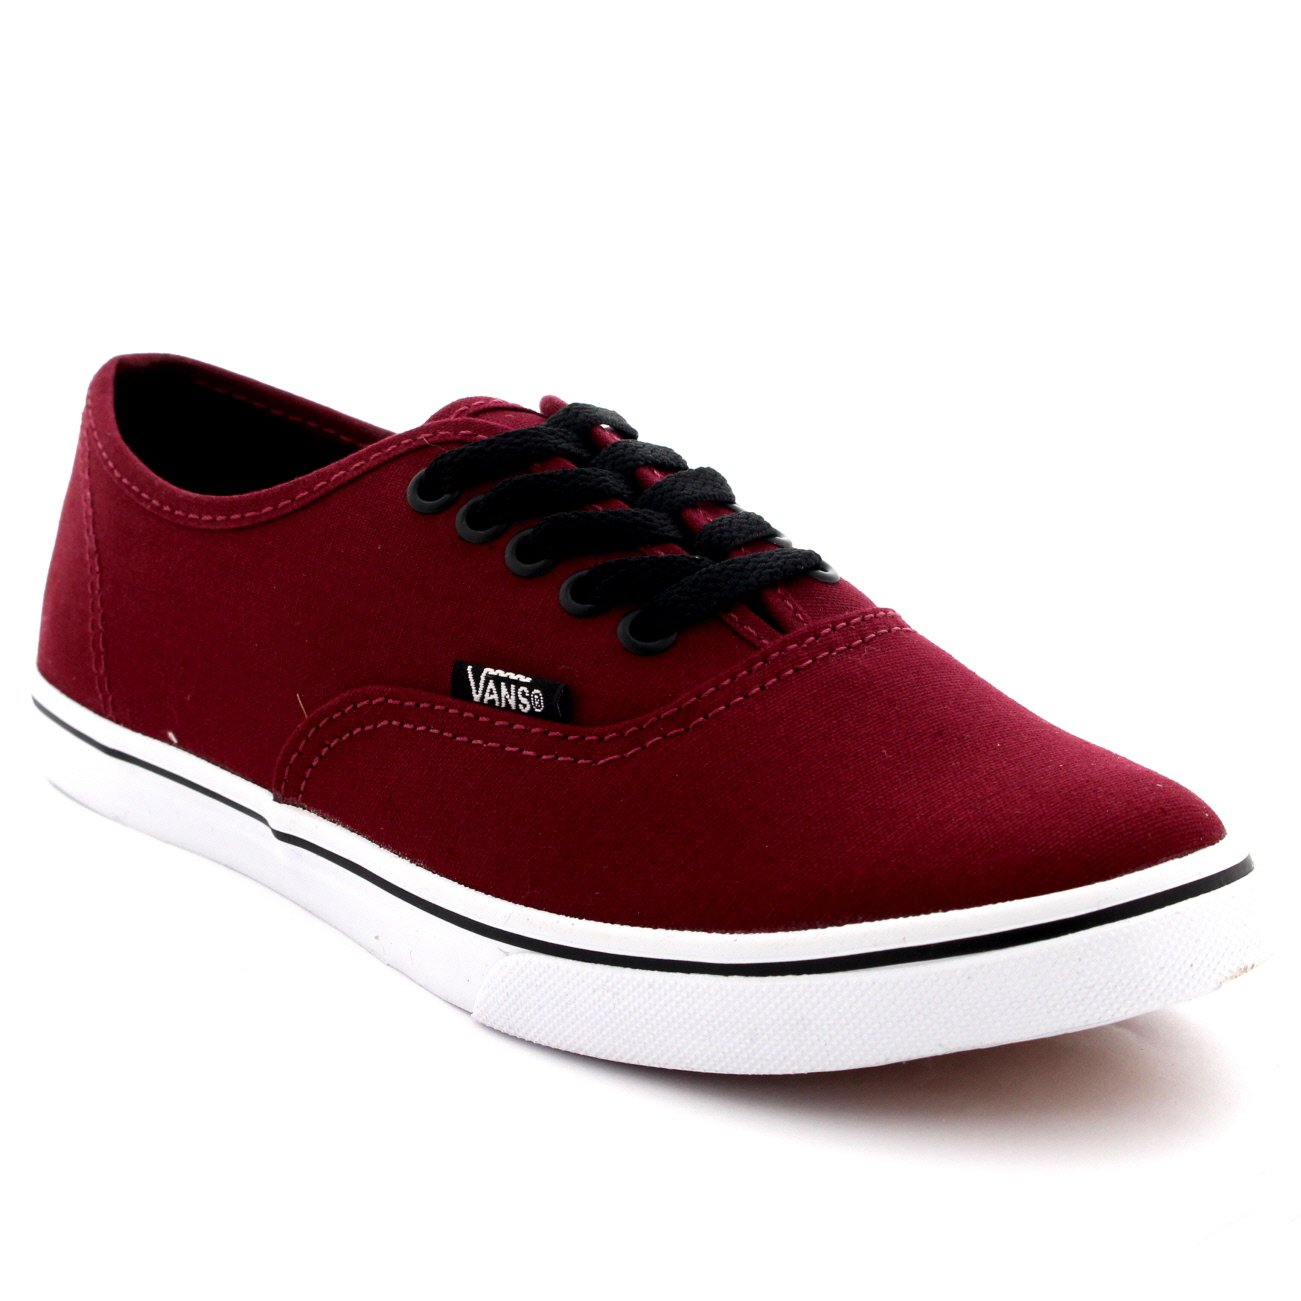 9cc27202cb Galleon - Womens Vans Authentic Lo Pro Plimsolls Low Top Skate Shoes  Sneakers - Tawny Port True White - 7.5